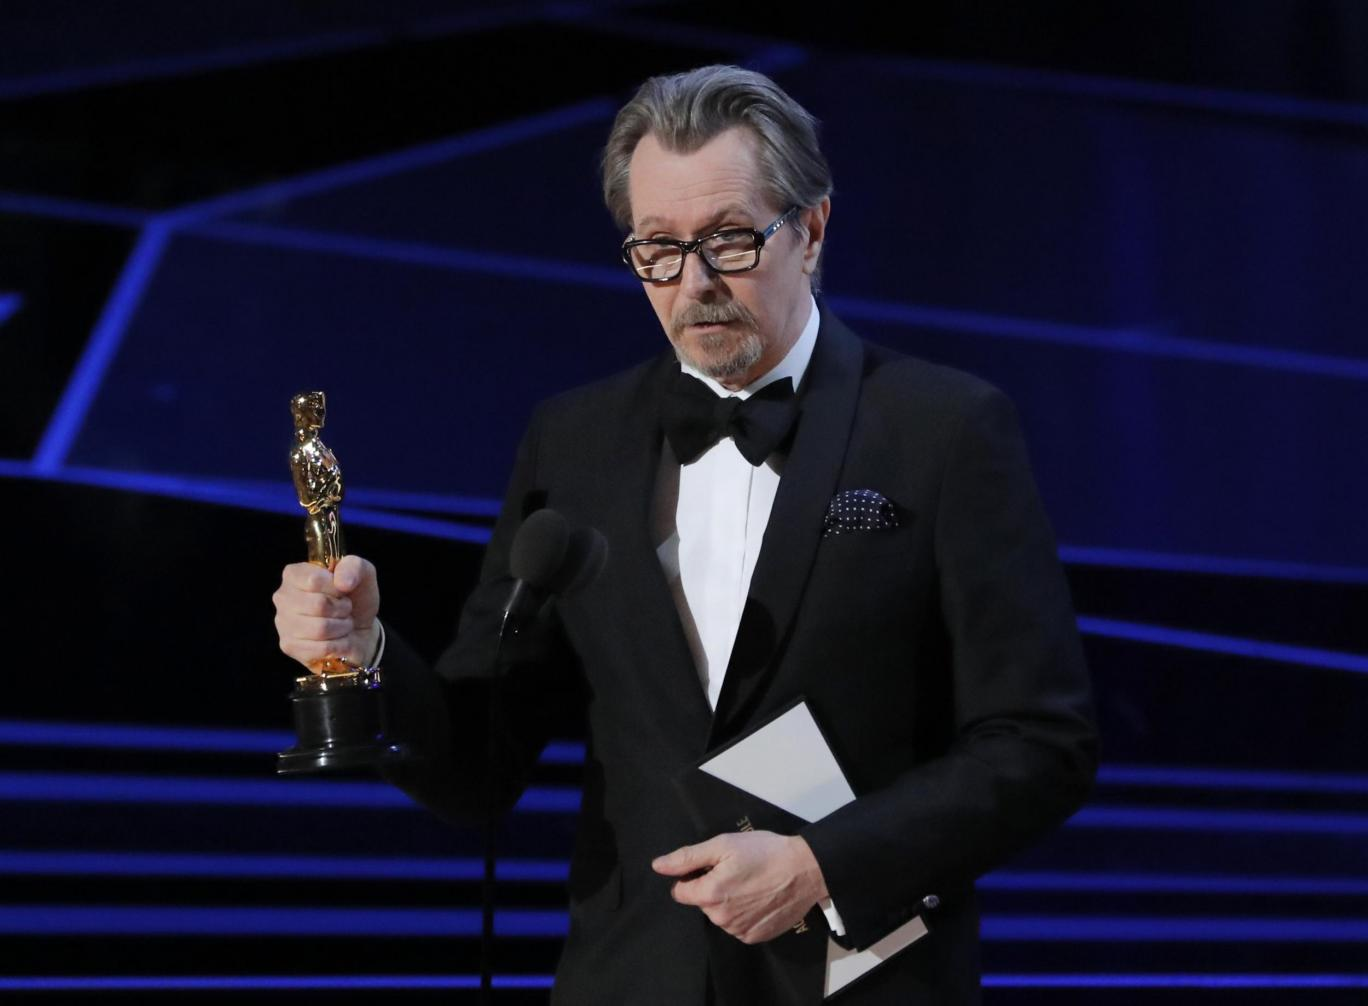 Gary Oldman keen to take on comedic role